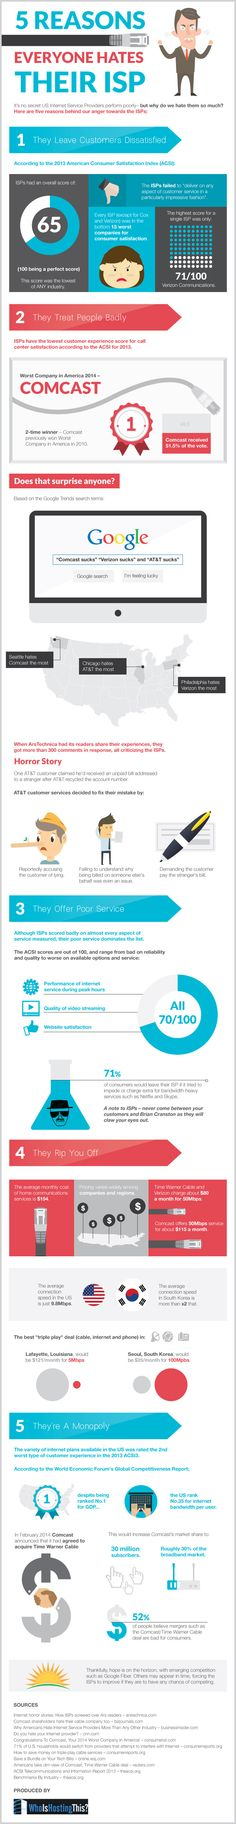 5 Reasons Everyone Hates Their ISP   #infographic #ISP #Internet #America